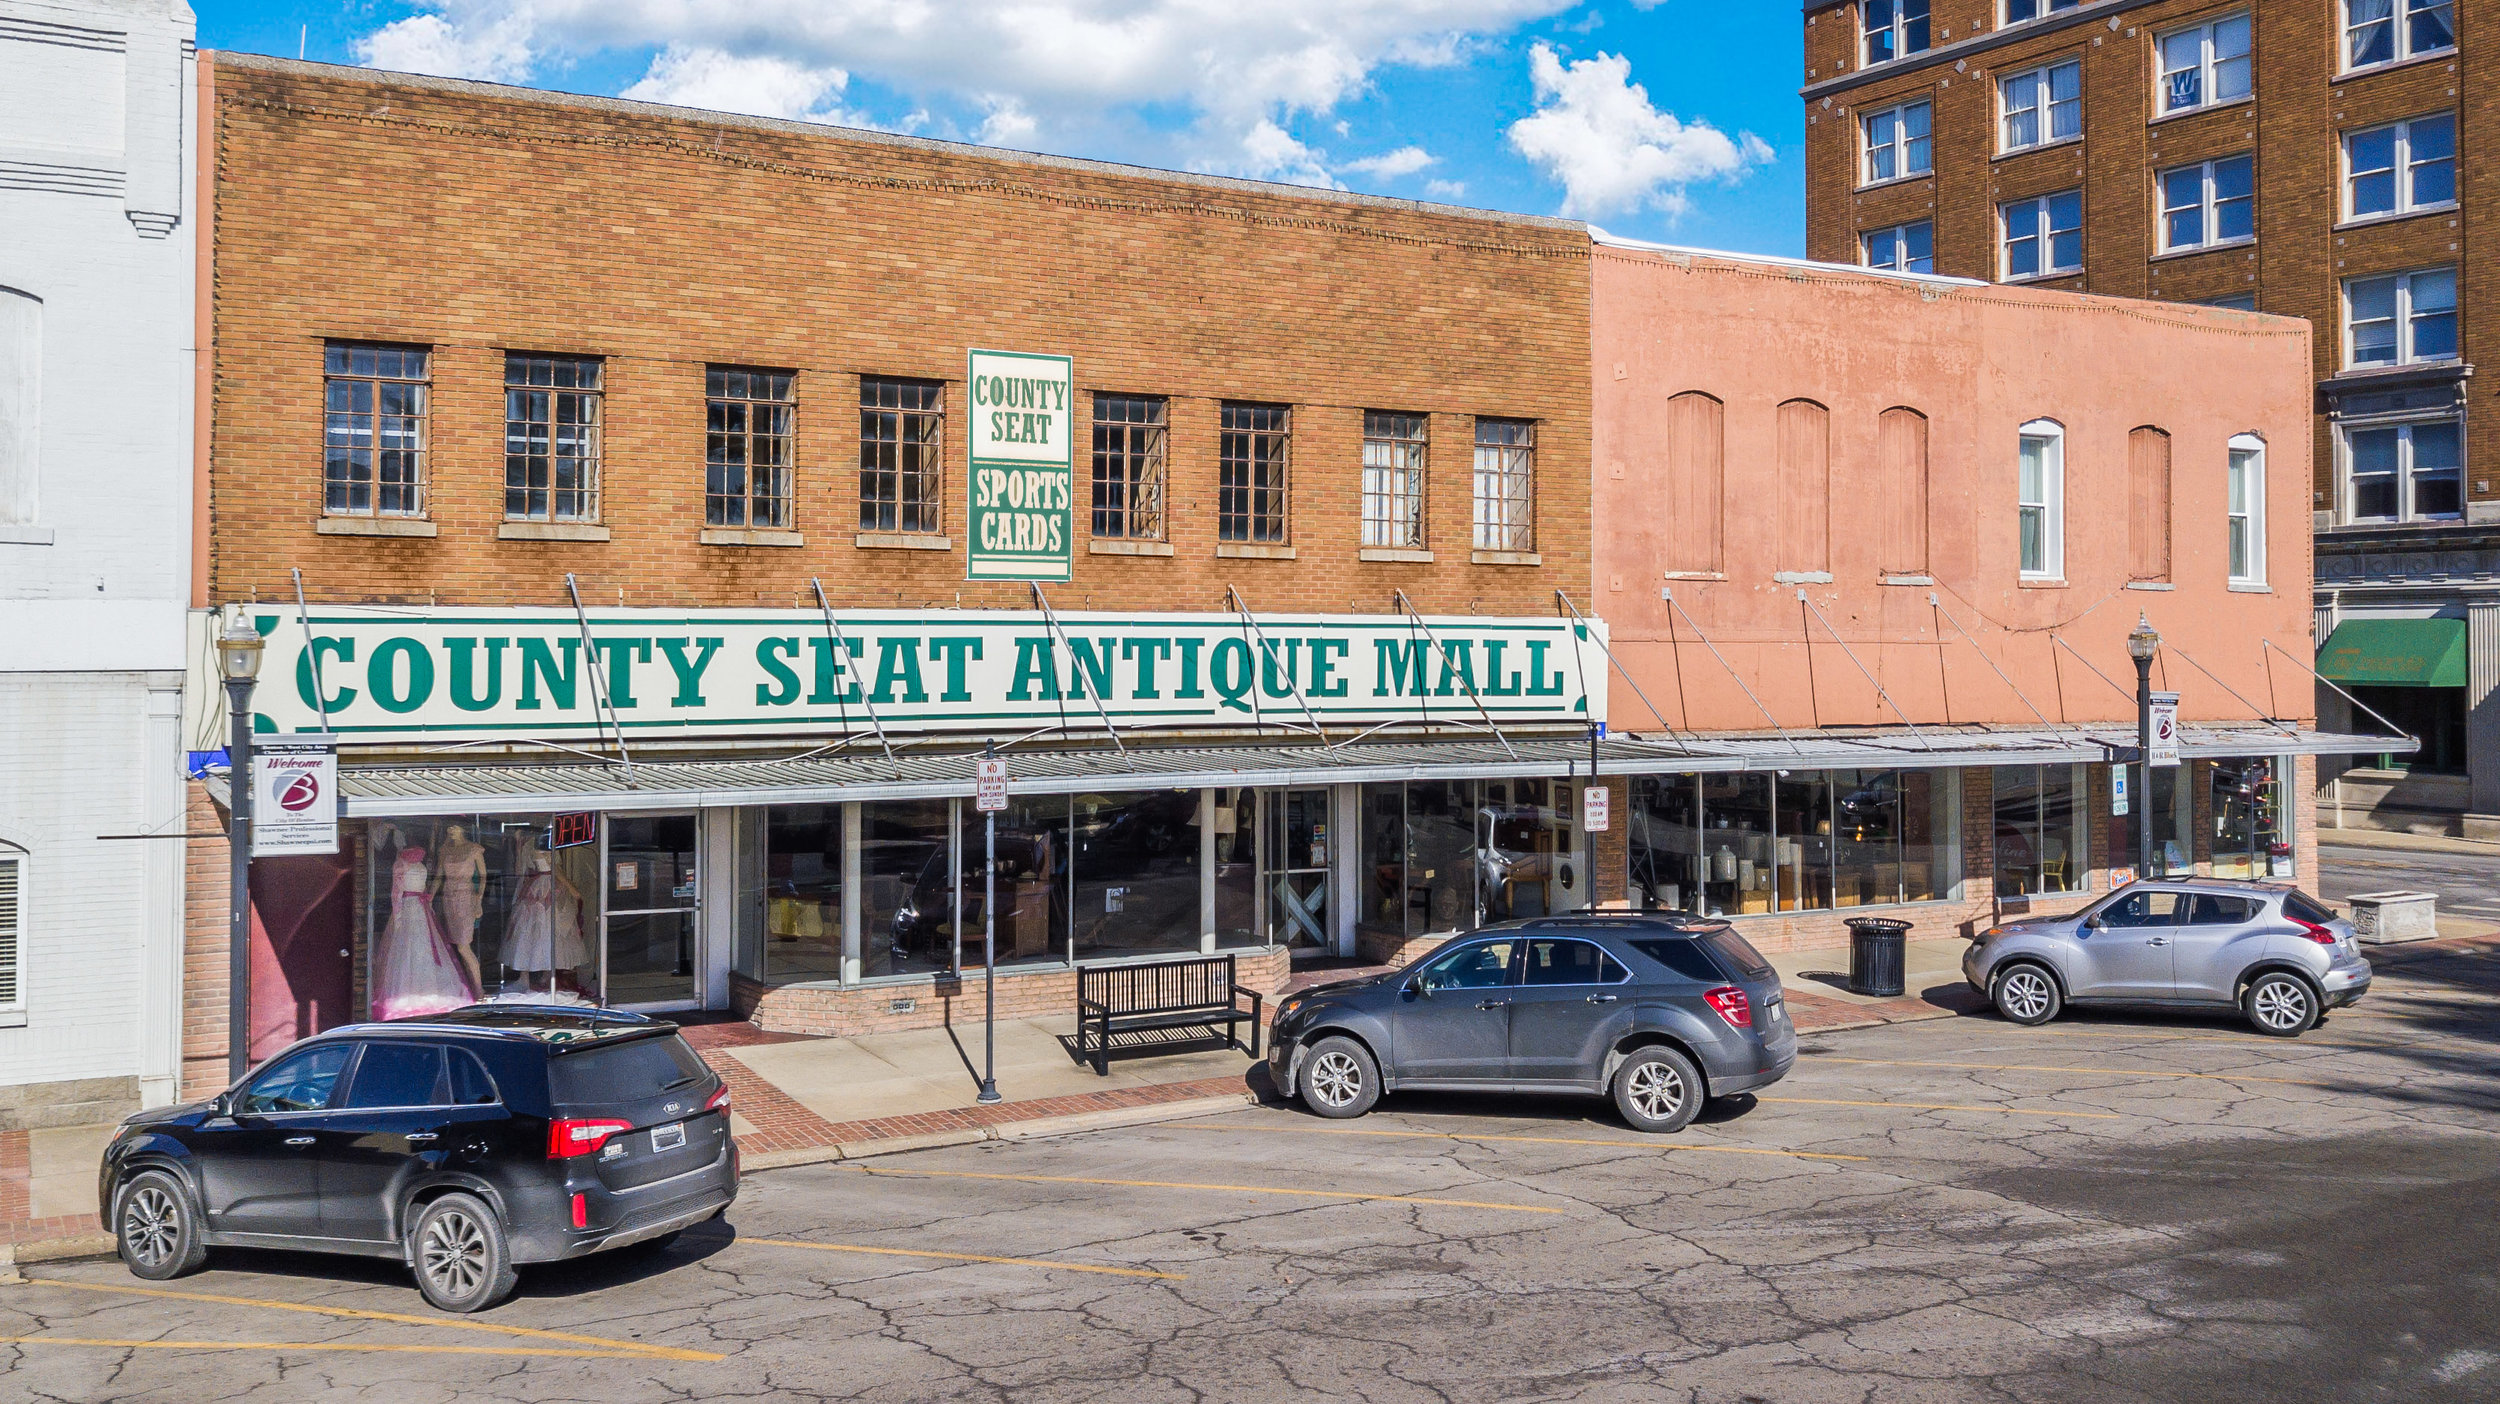 county seat antique mall benton, illinois - southern illinois antiques